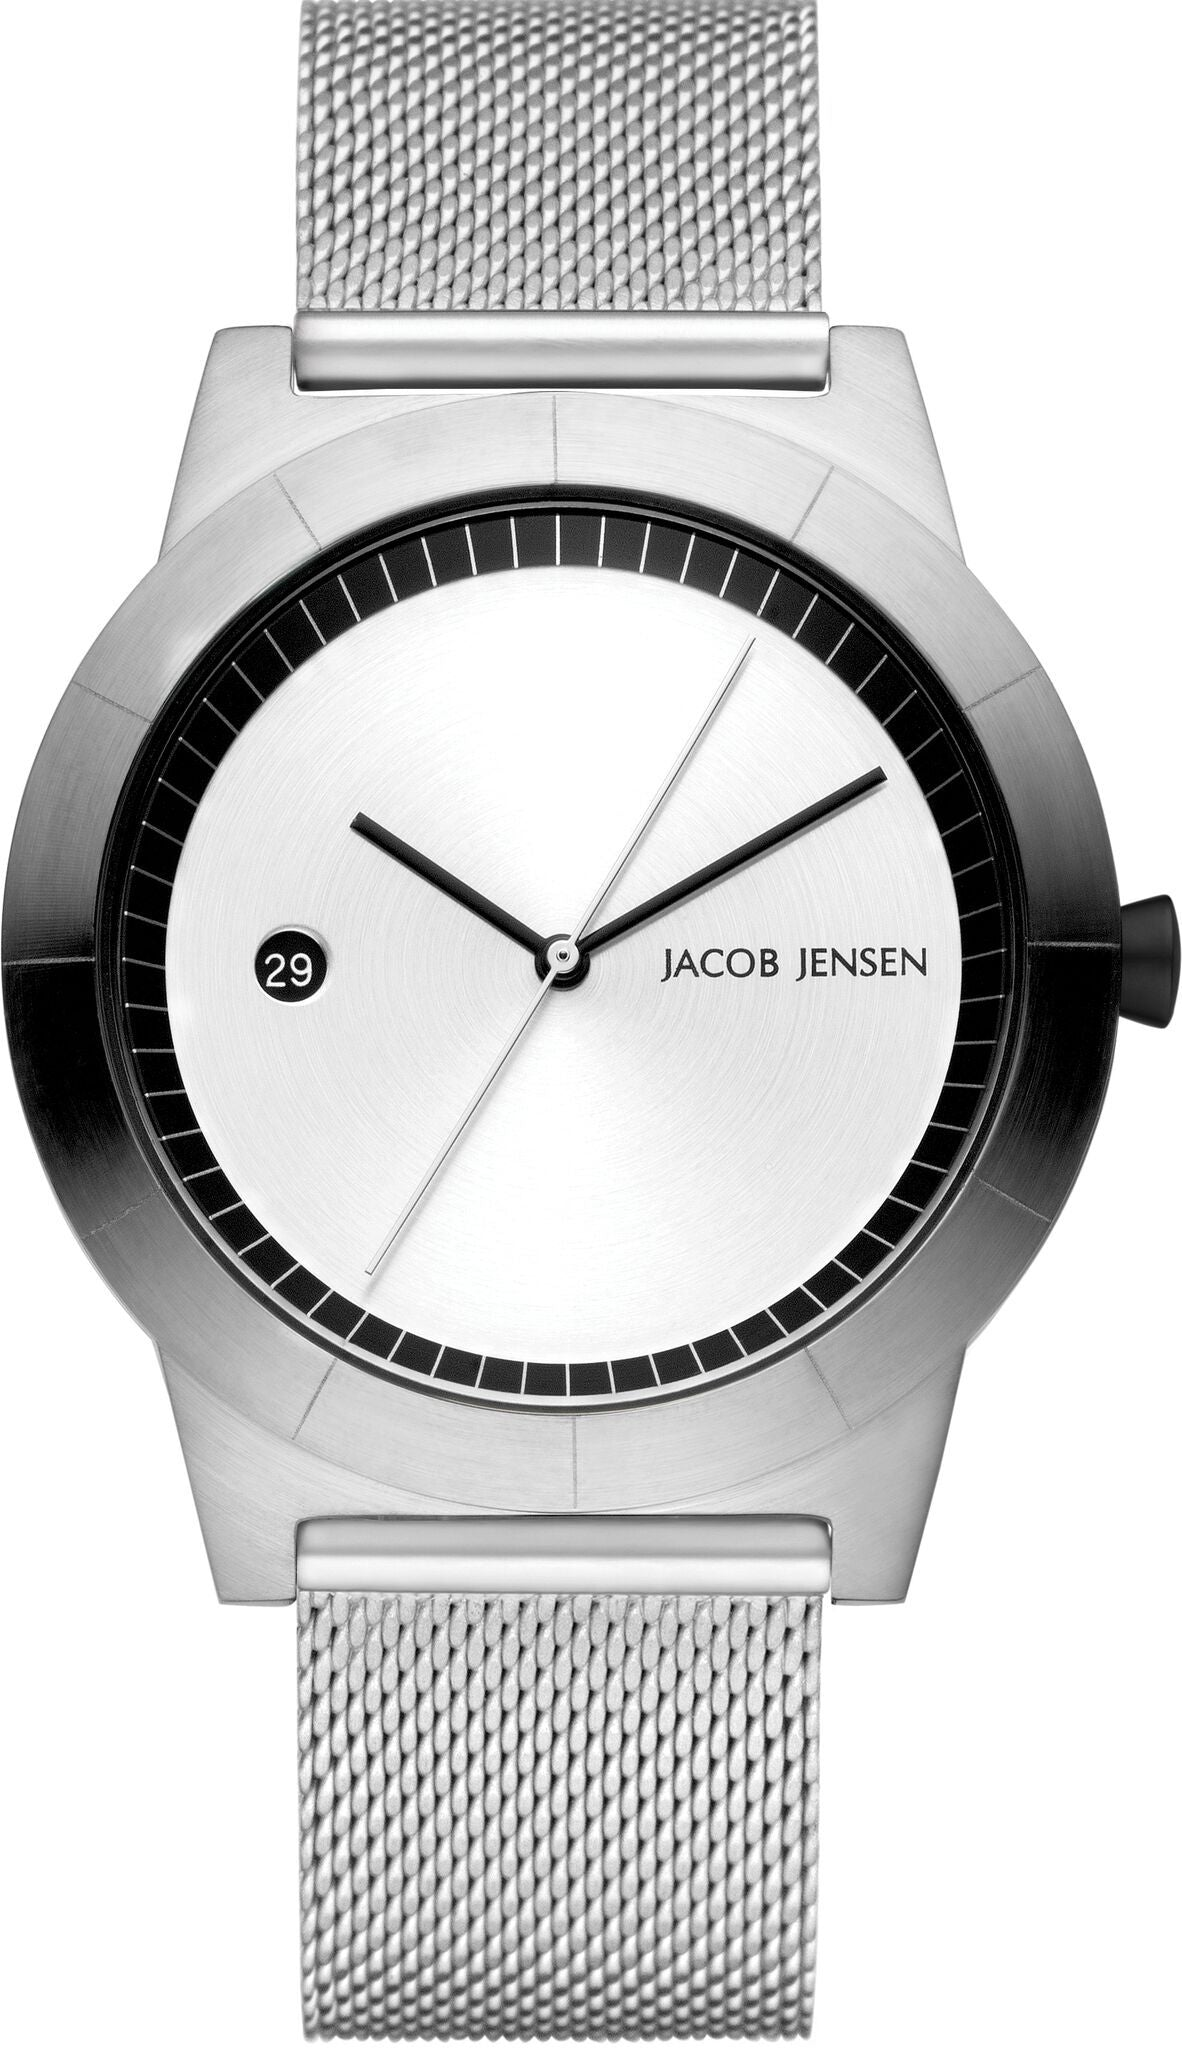 Ascent 142 Men's Watch, Ø42 mm